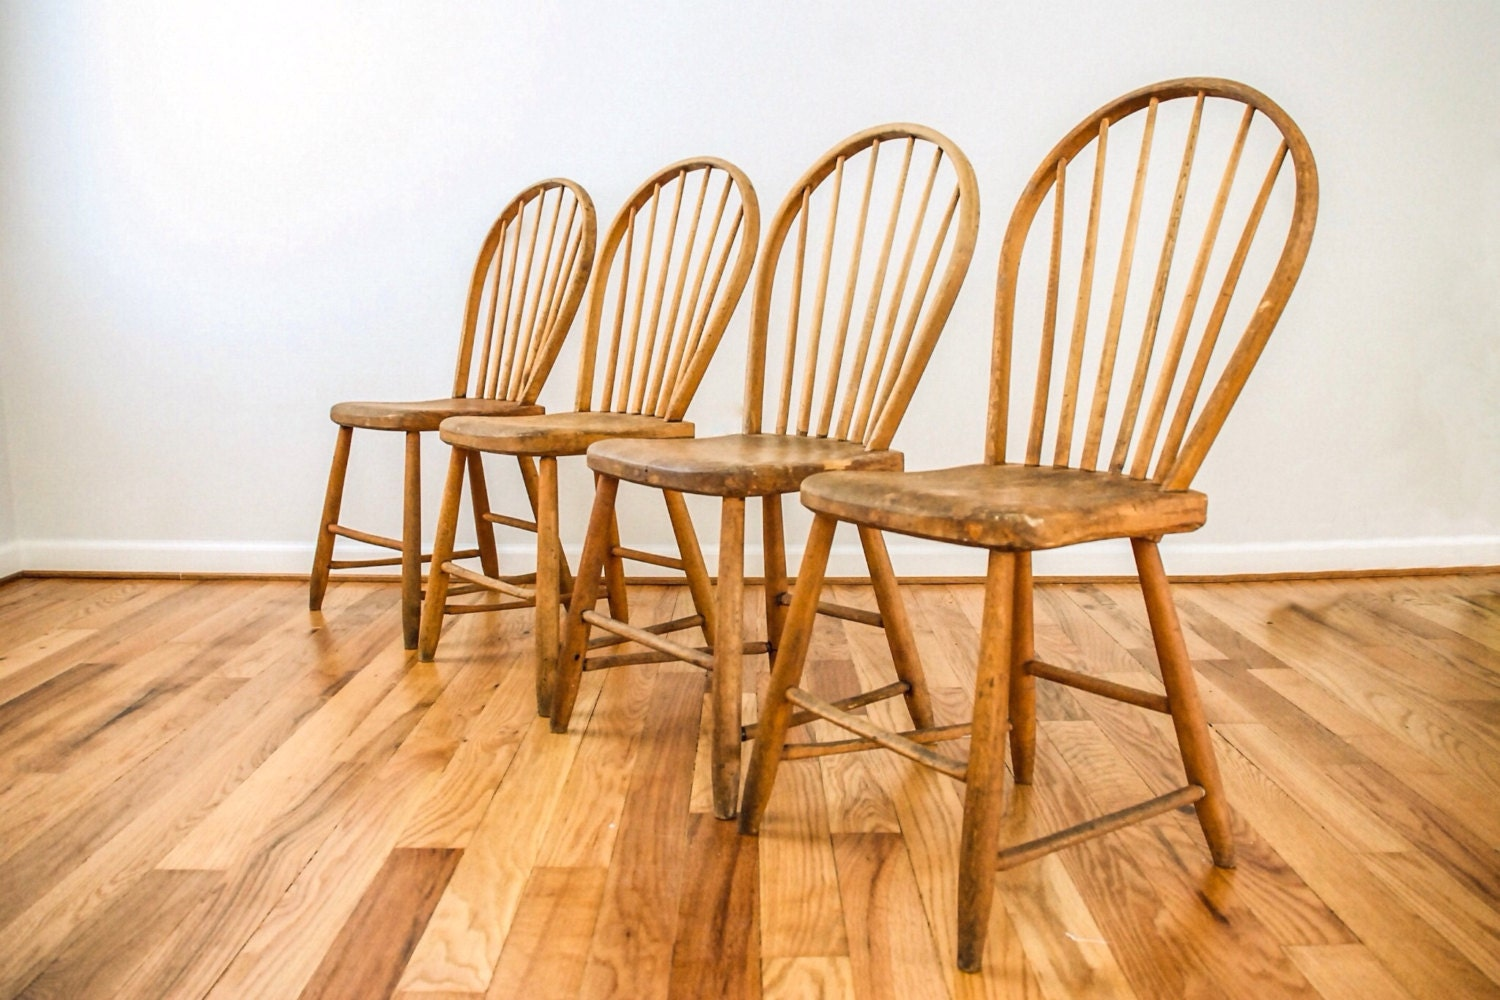 antique dining chairs, dining chairs, antique wood chairs, wood dining  chairs, wonderful rustic Windsor hoop back dining chairs, set of 4 - Antique Dining Chairs, Dining Chairs, Antique Wood Chairs, Wood